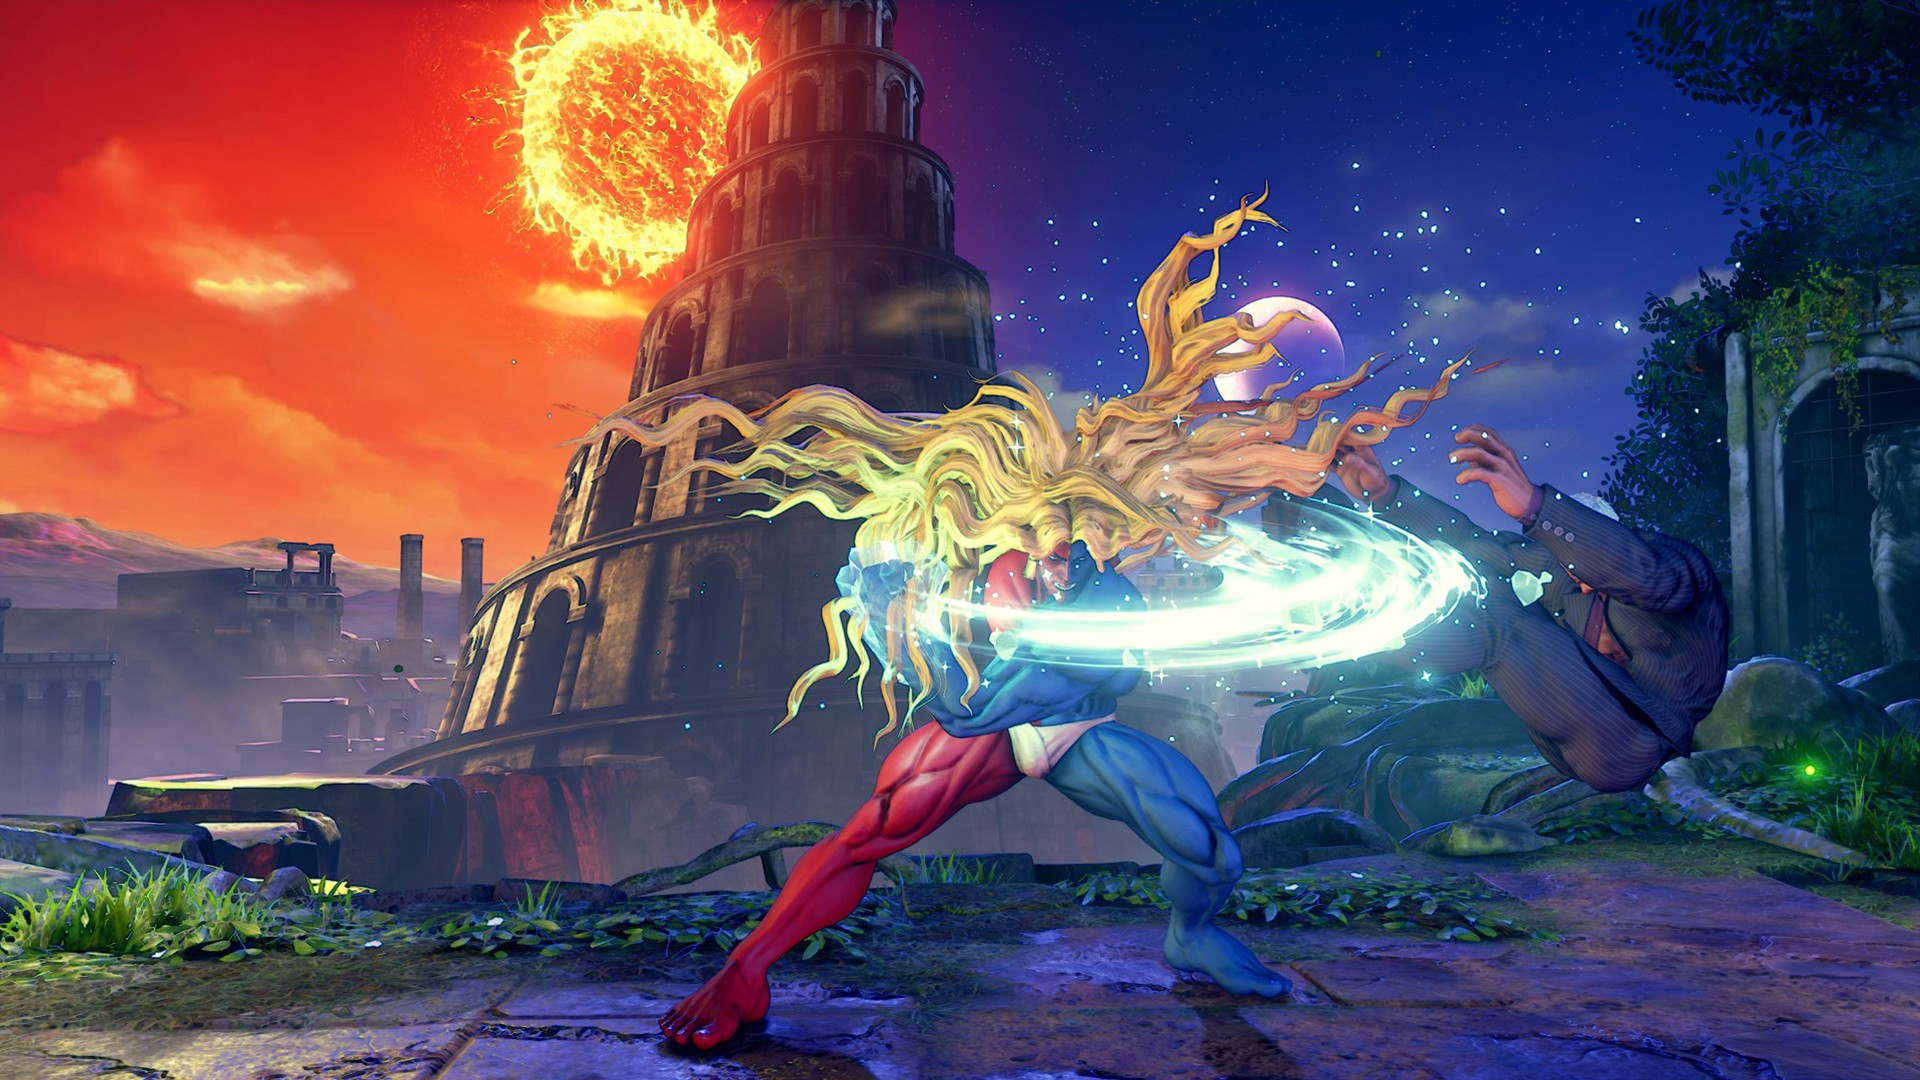 Street Fighter V: Champion Edition, Street Fighter V Champion Edition, Street Fighter 5 Champion Edition, Street Fighter Five, PS4, PlayStation 4, Capcom, release date, gameplay, features, price, pre-order, US, North America, West